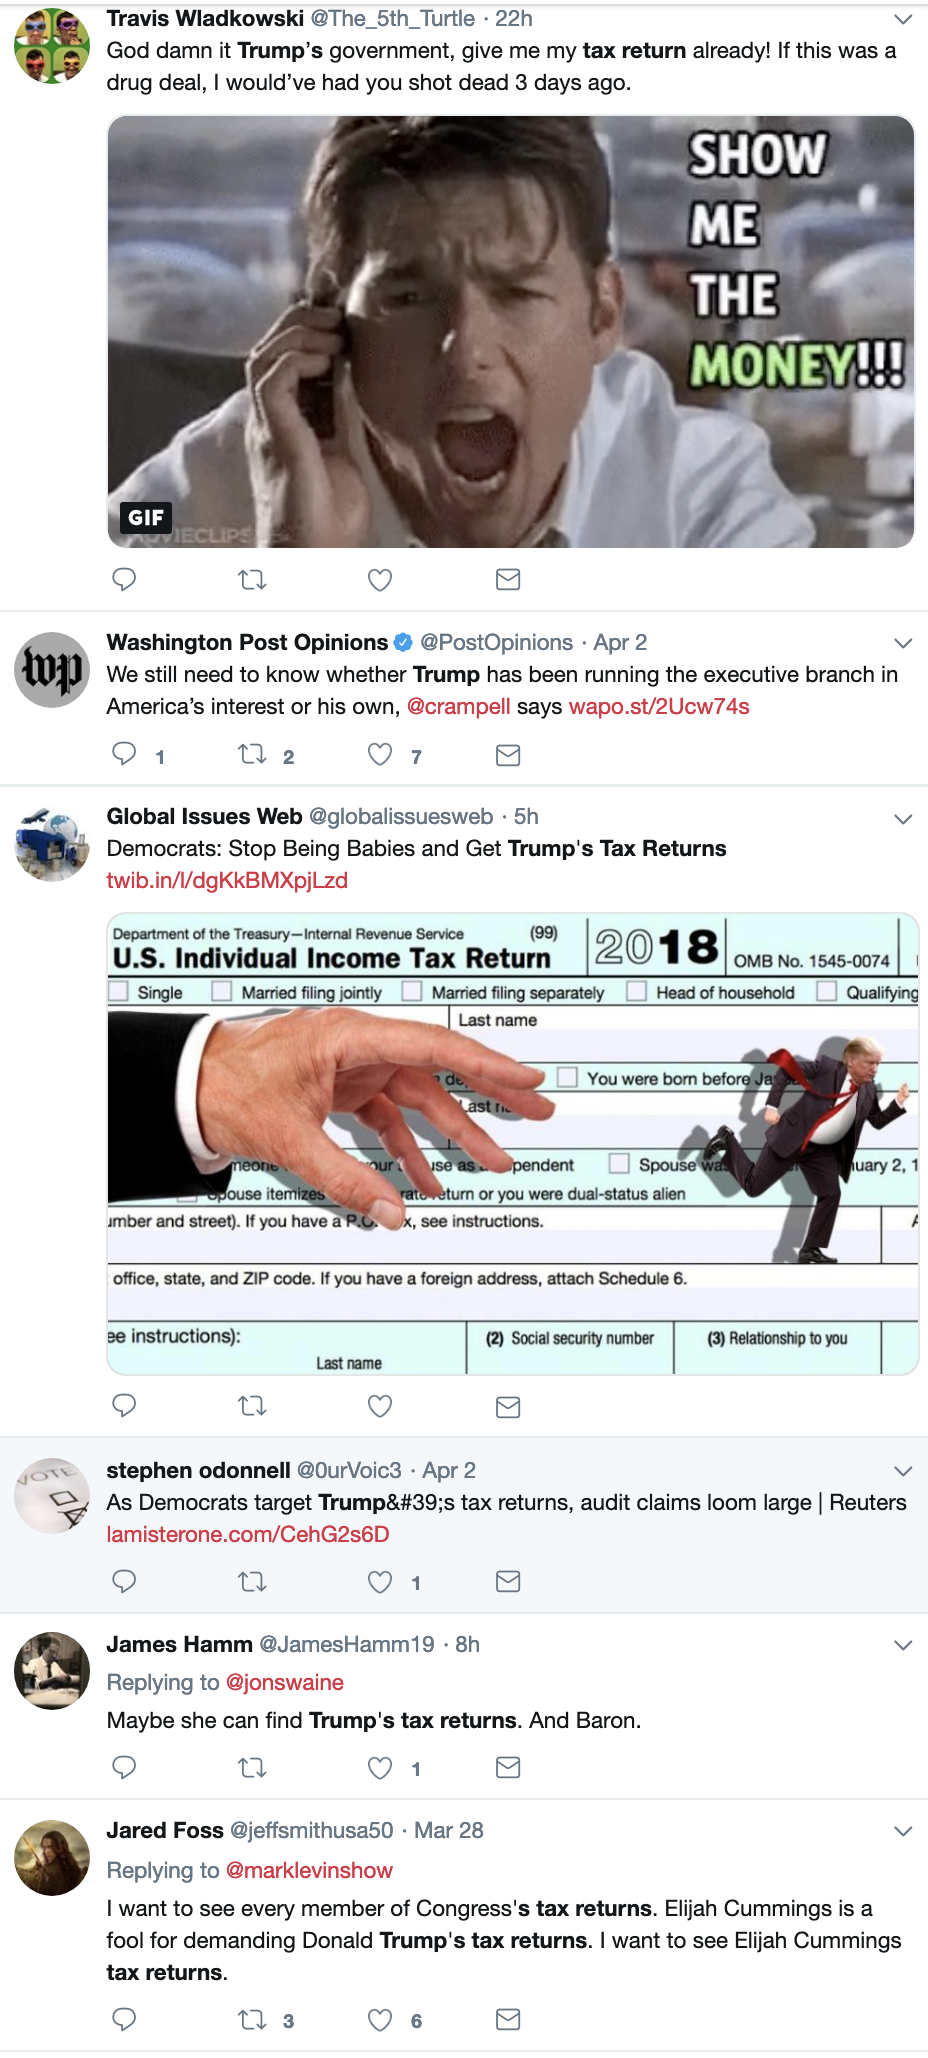 Screen-Shot-2019-04-03-at-3.46.08-PM Trump's Financial Records For The Past 6 Years Subpoenaed Corruption Crime Donald Trump Investigation Mueller Politics Robert Mueller Russia Top Stories